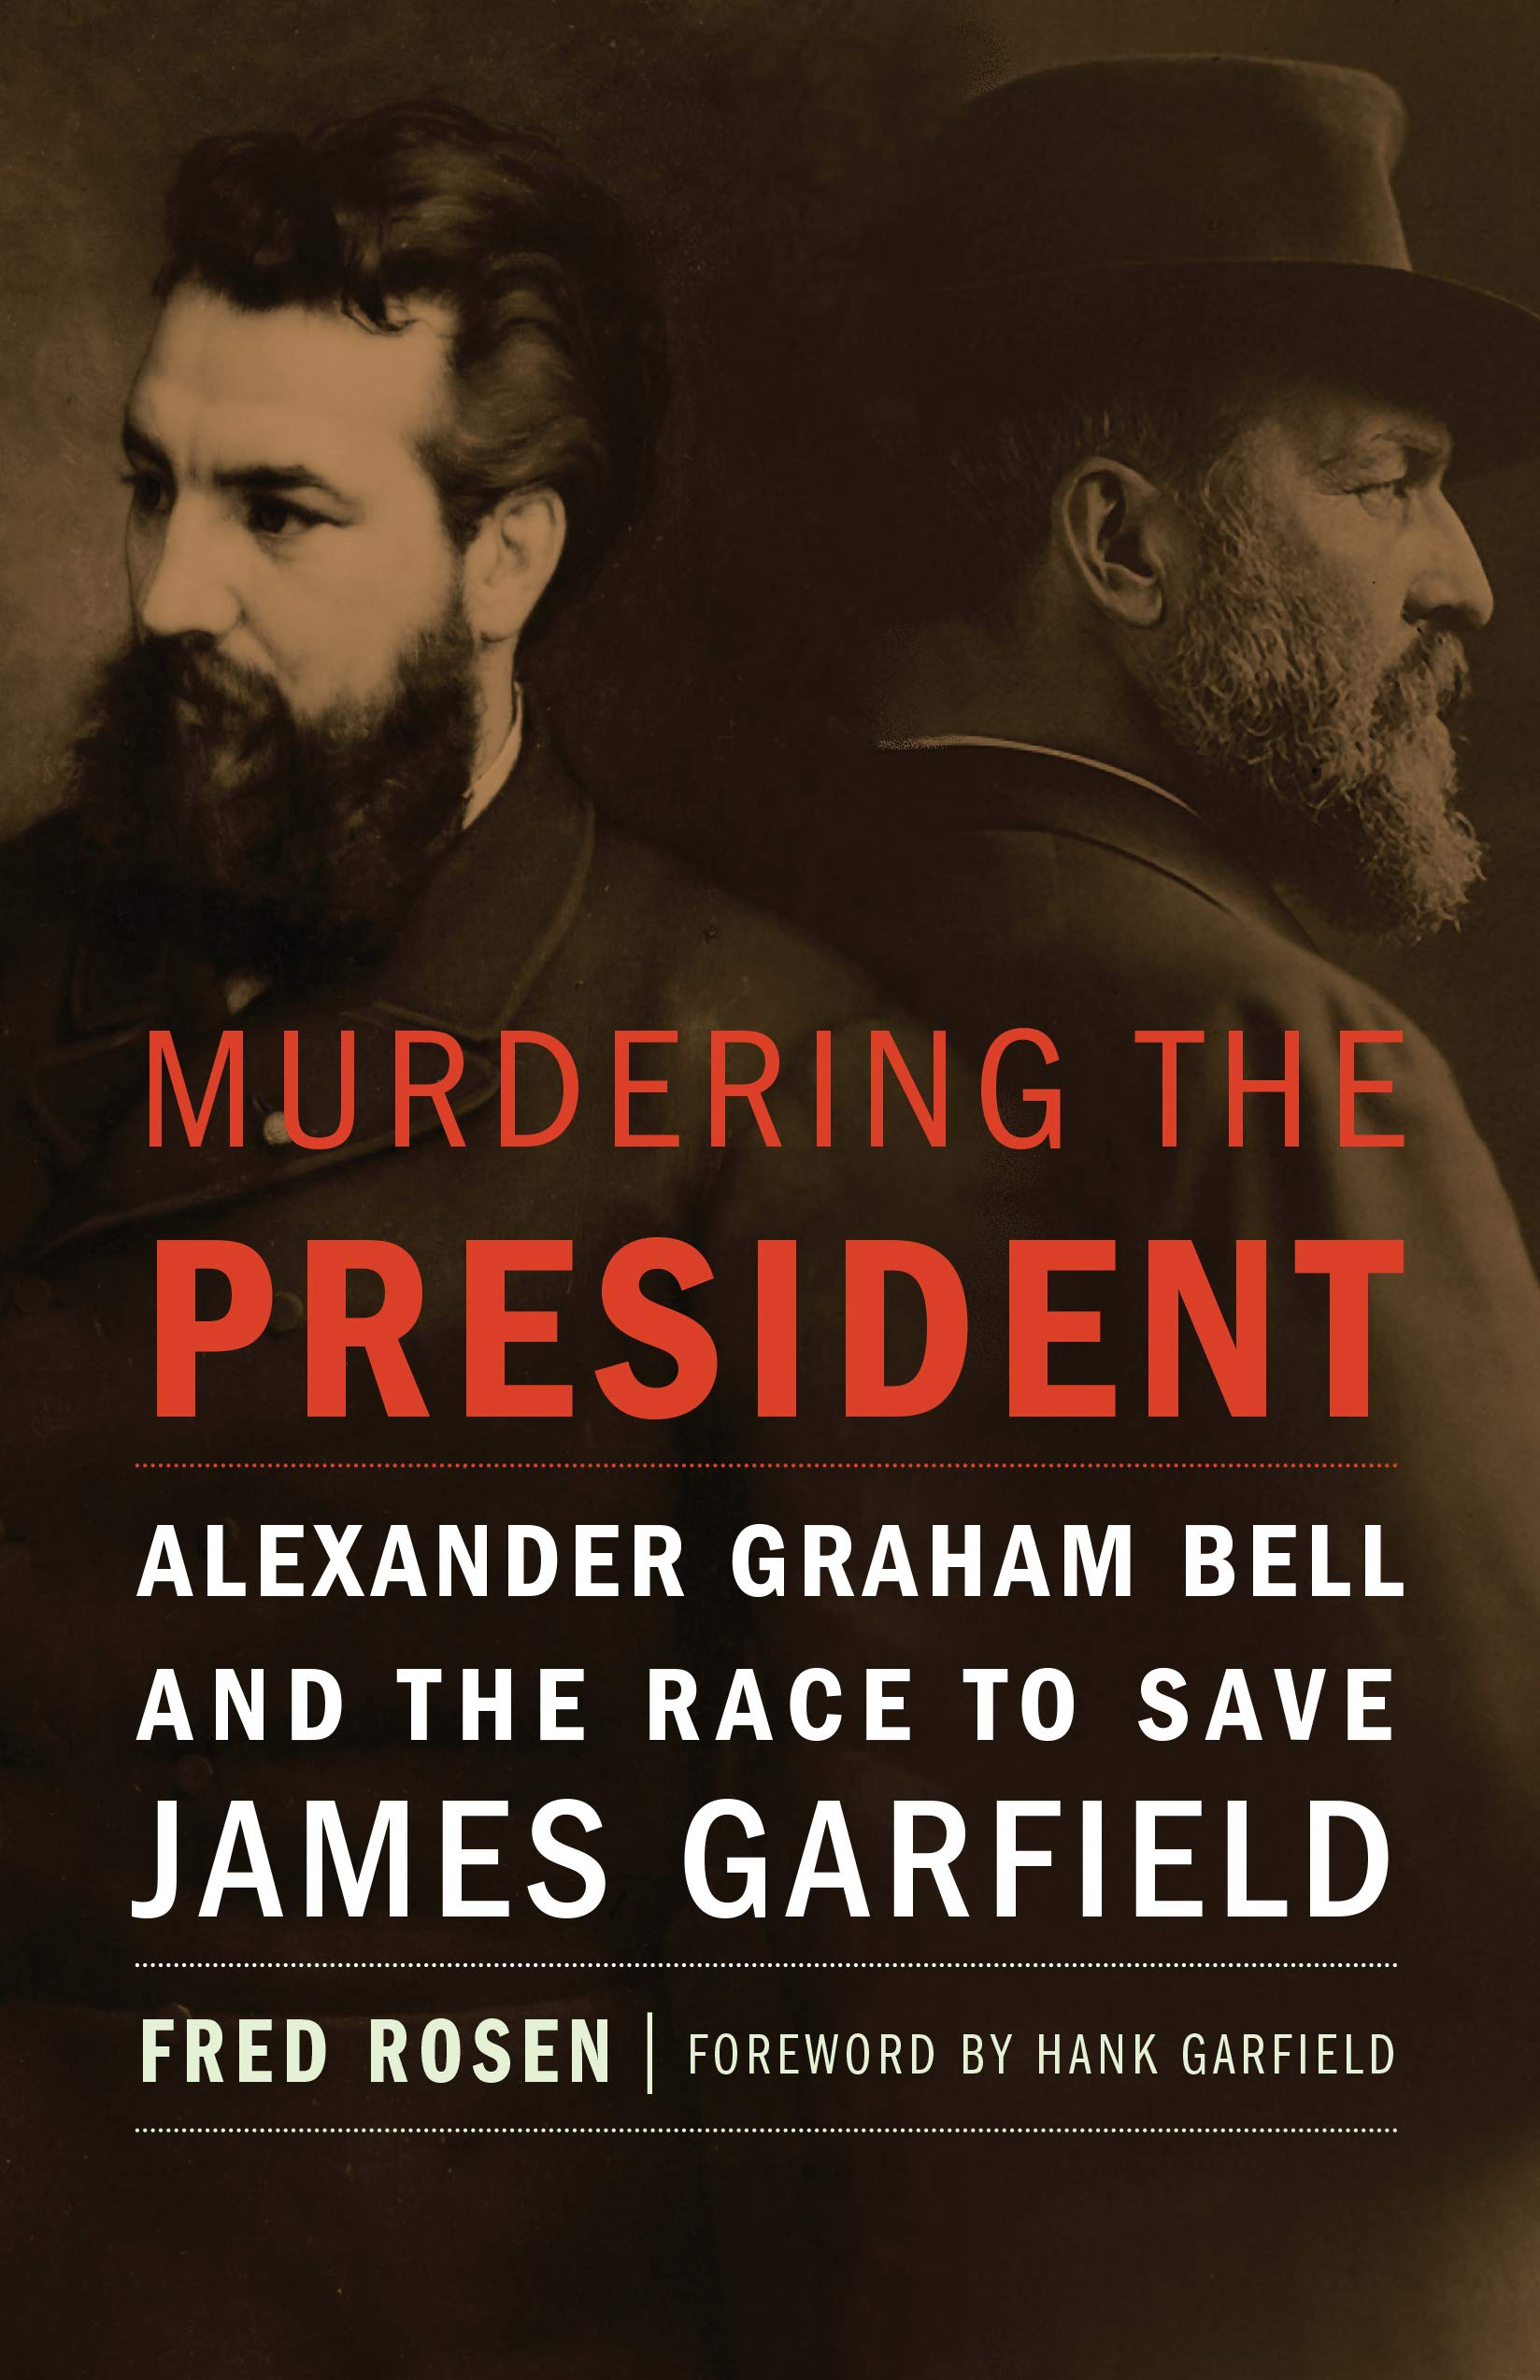 Amazon Com Murdering The President Alexander Graham Bell And The Race To Save James Garfield 9781612347684 Rosen Fred Garfield Hank Books